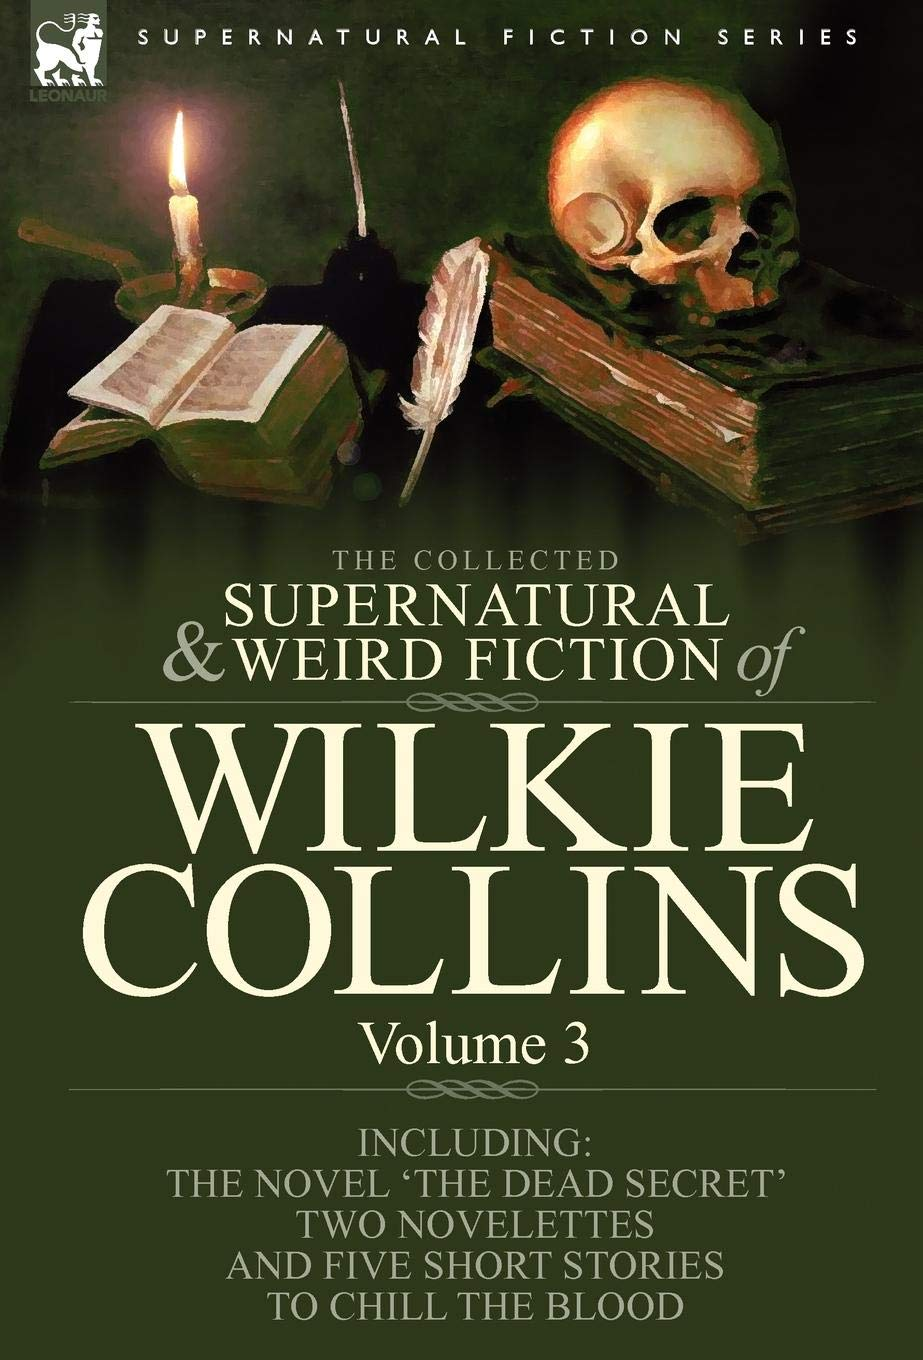 The Collected Supernatural and Weird Fiction of Wilkie Collins: Volume 3-Contains one novel 'Dead Secret,' two novelettes 'Mrs Zant and the Ghost' and ... and five short stories to chill the blood PDF